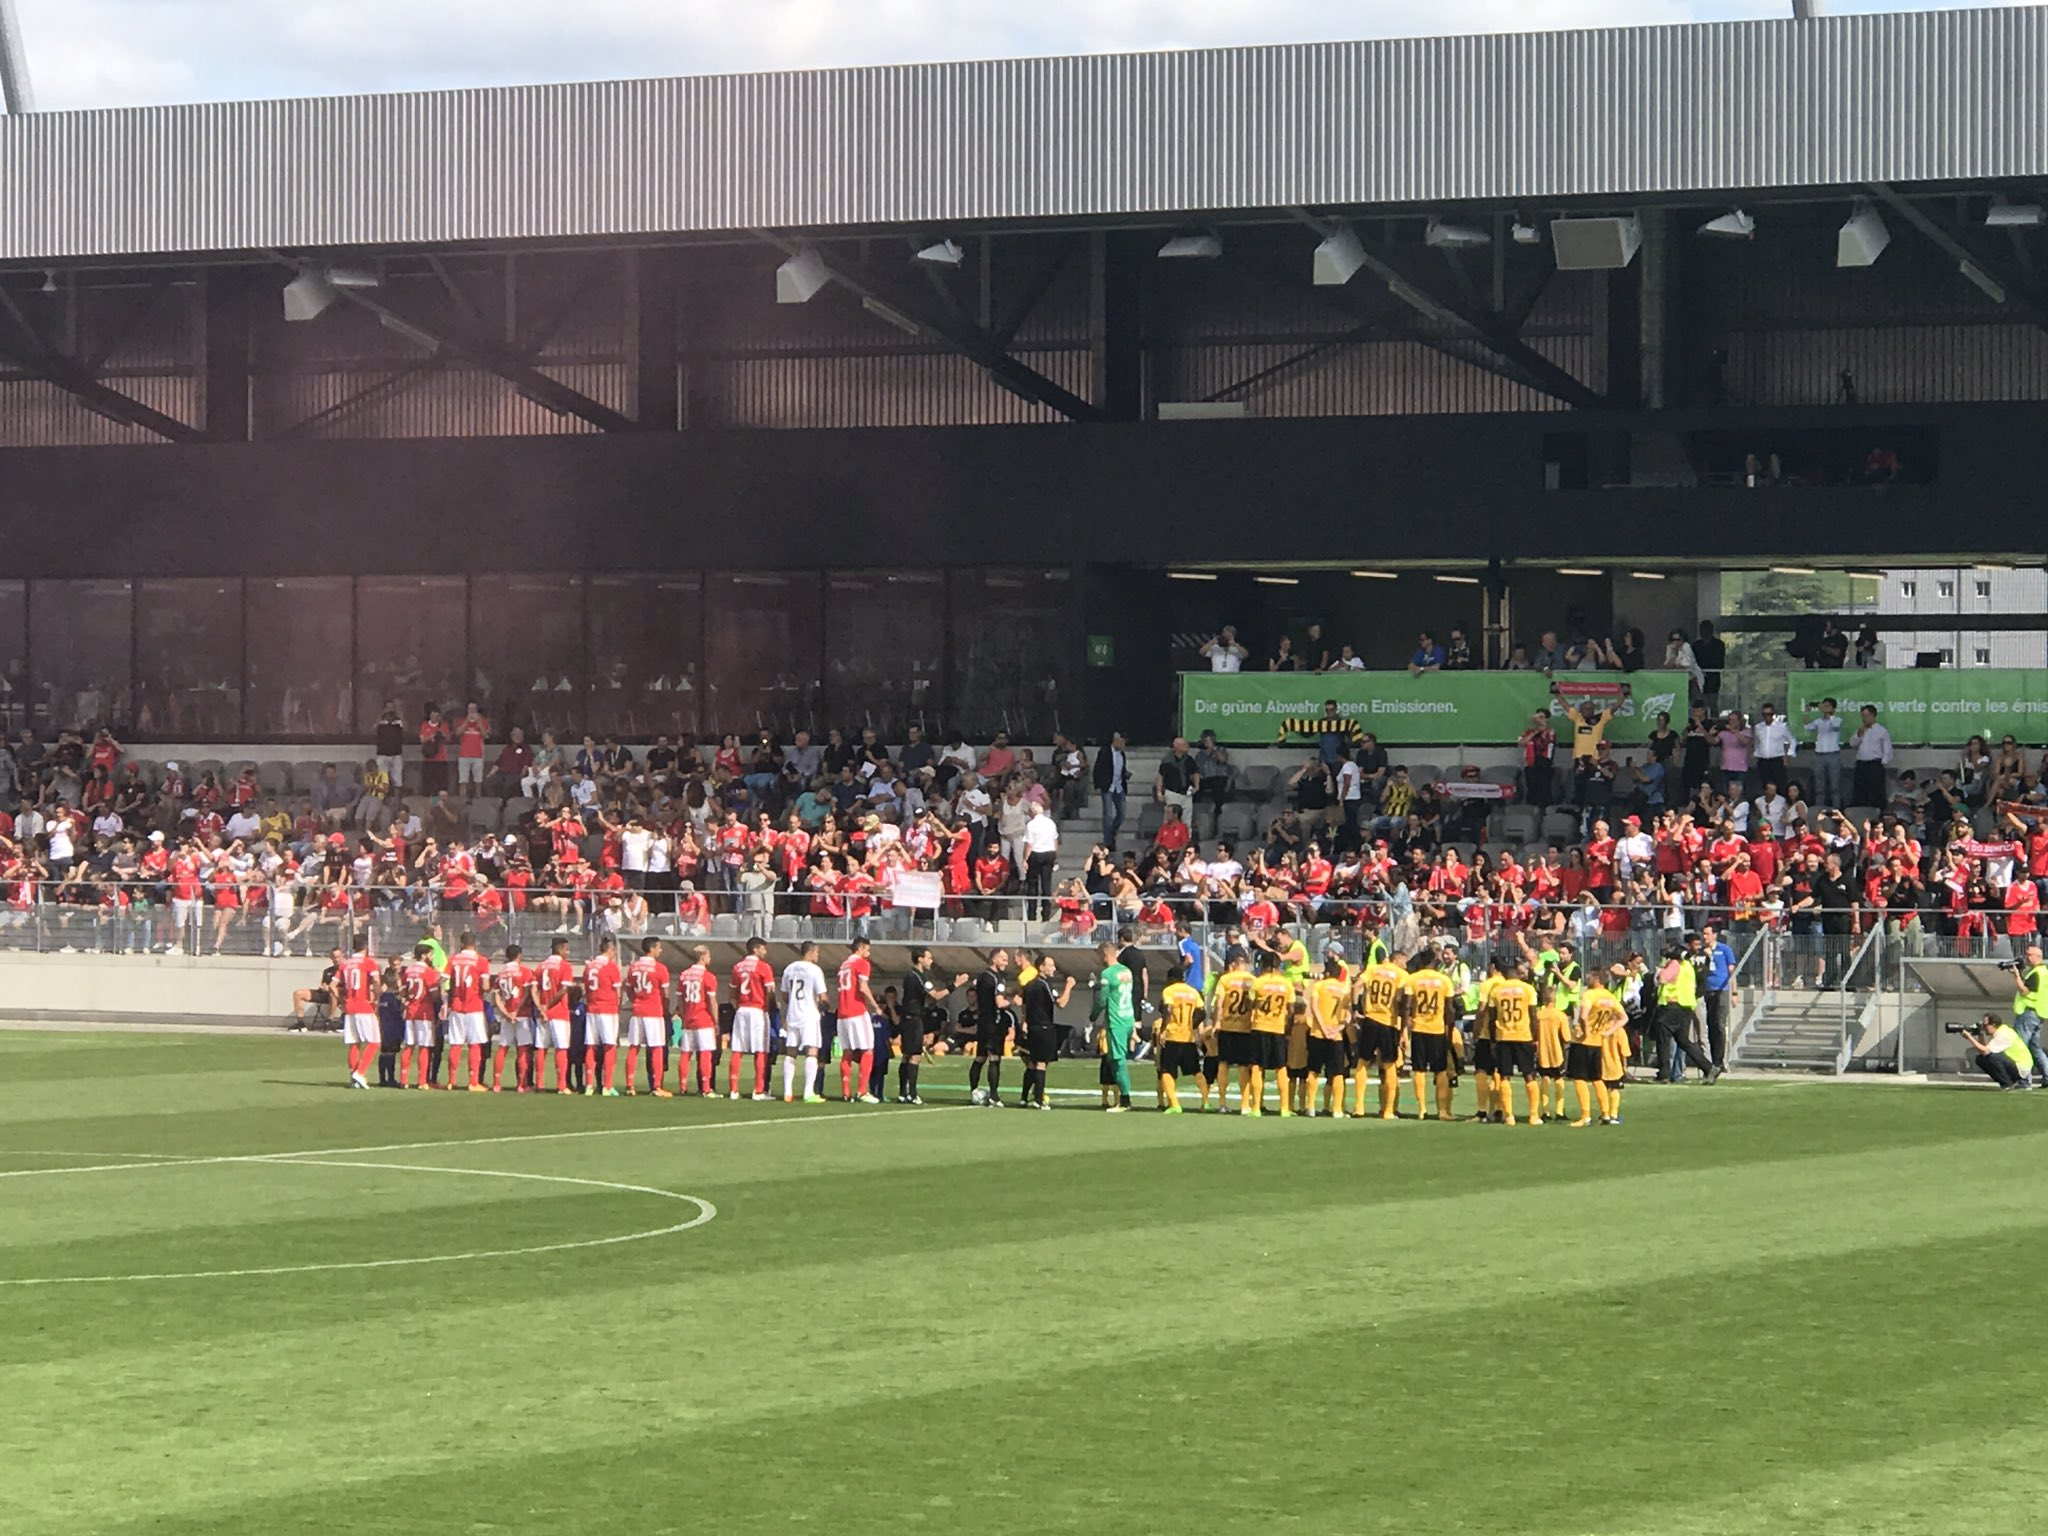 Game on! #slblive #UhrenCup https://t.co/s6GwwLo44f